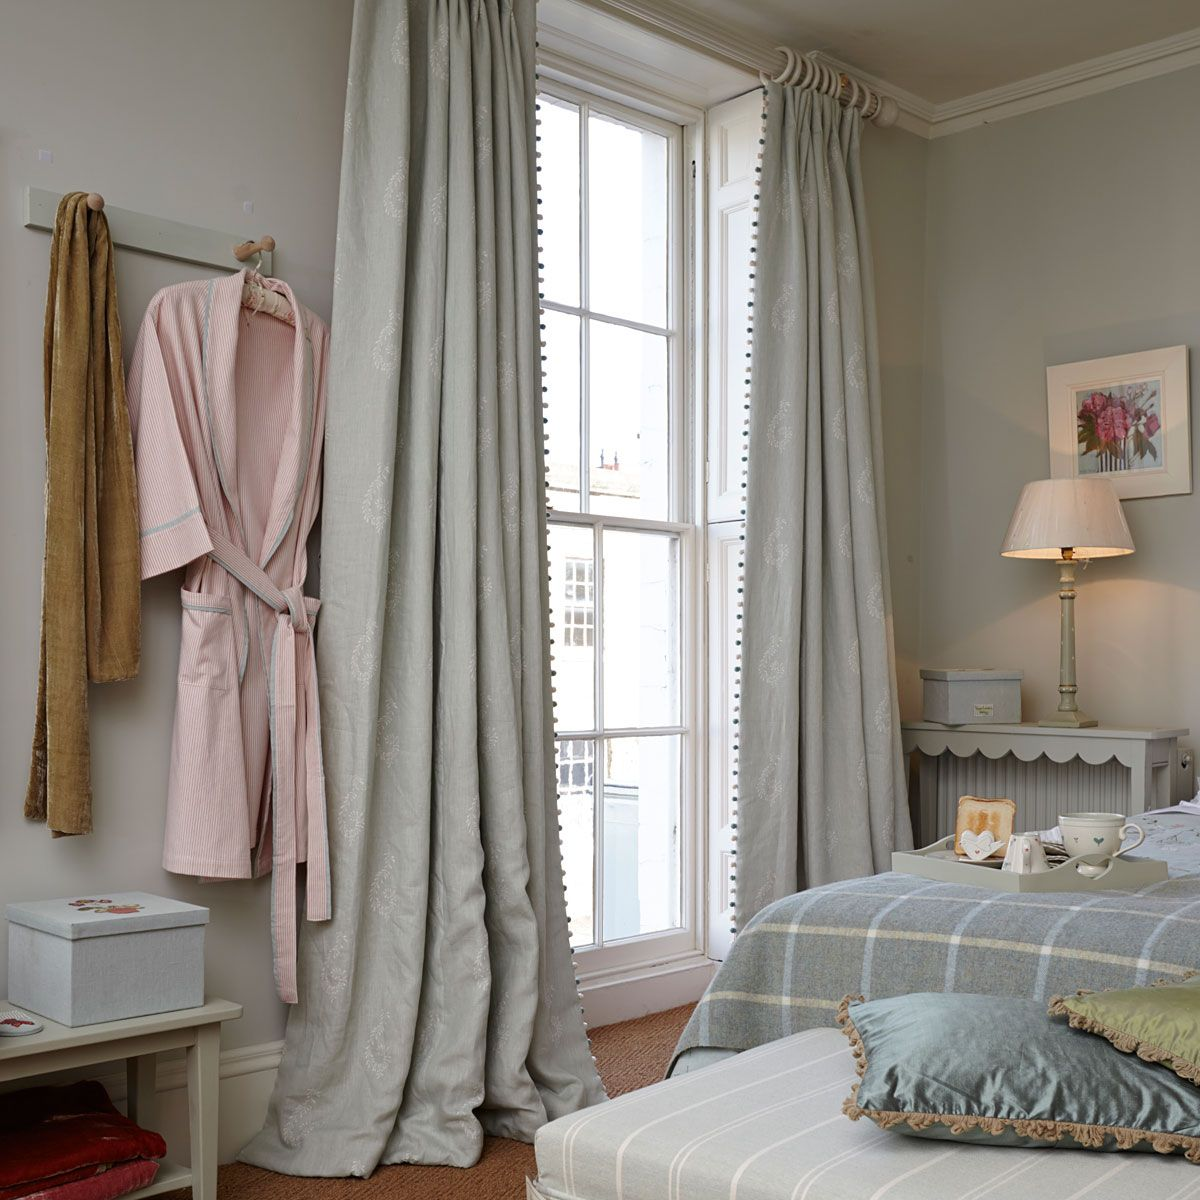 Fabric 327   Linen/Shalini   Duck Egg Blue L Susie Watson Designs With  Bobble · Linen CurtainsBedroom ...